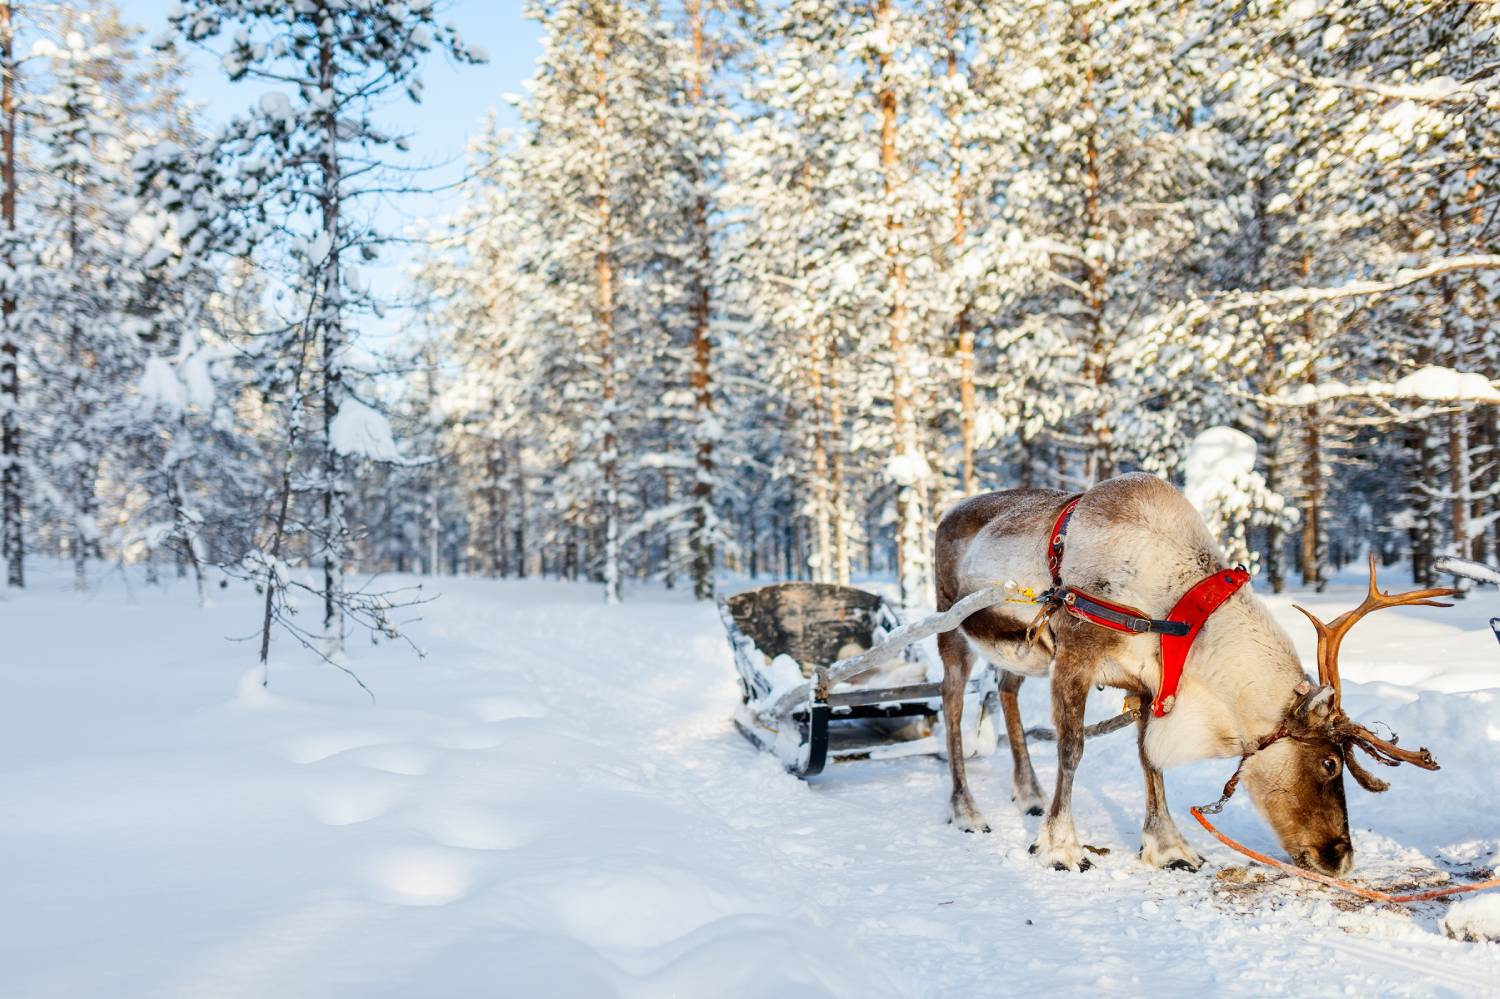 Finland - The Best Countries To Visit In Europe